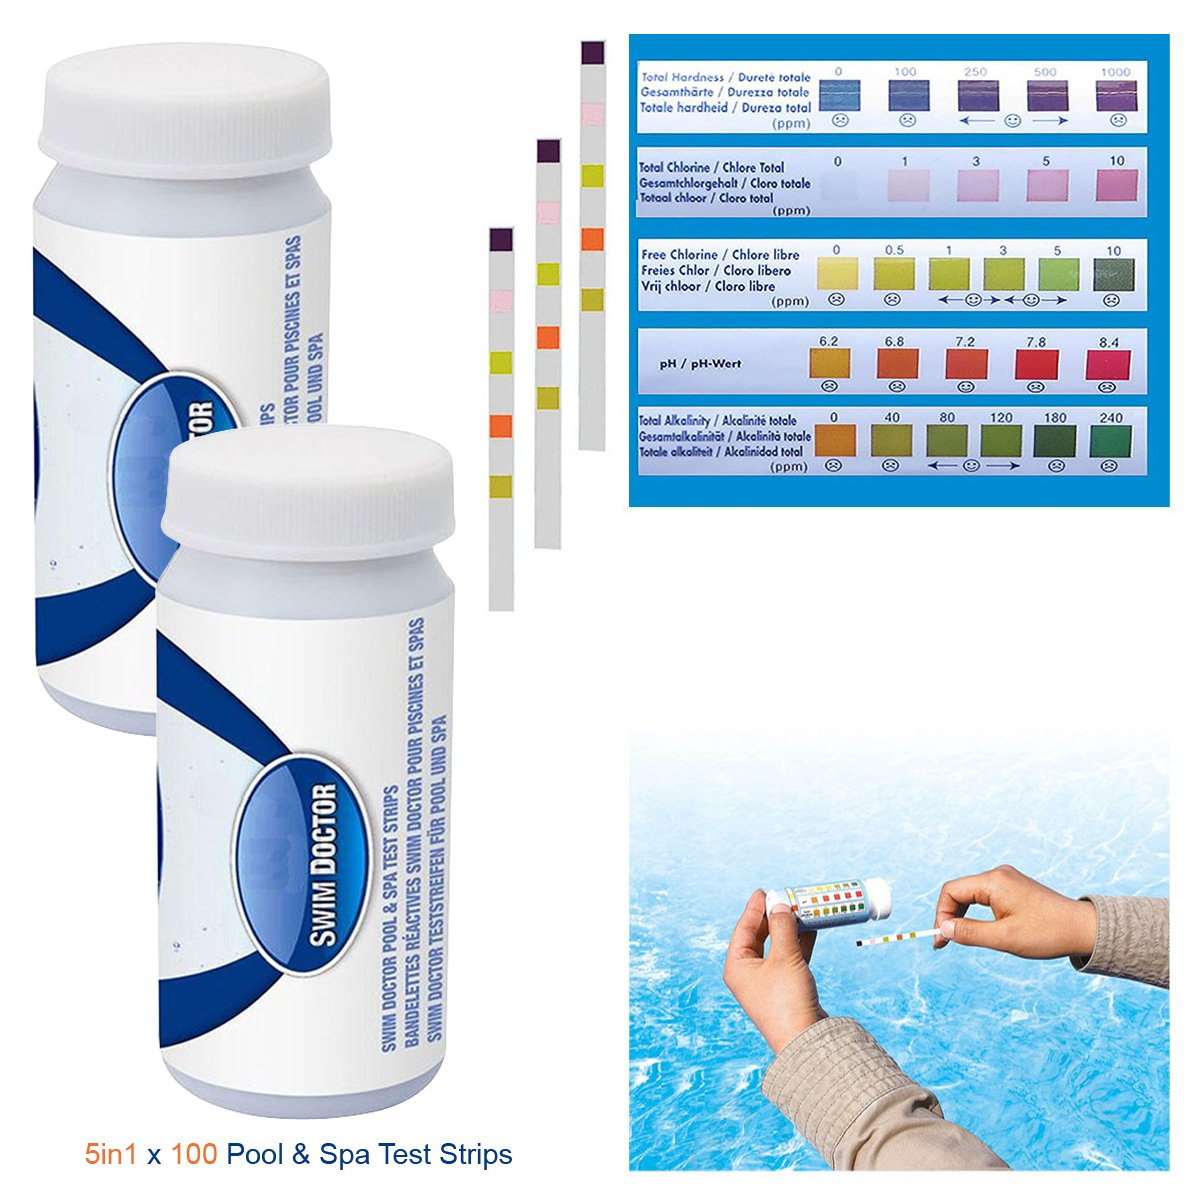 3in1 / 5in1 Bestway Test Strips for Lay Z Spa Pool Hot Tub PH Alkalinity & Chlorine Test Pack Contains 100/200 Strips by Crystals® (100x5in1TestStrips)